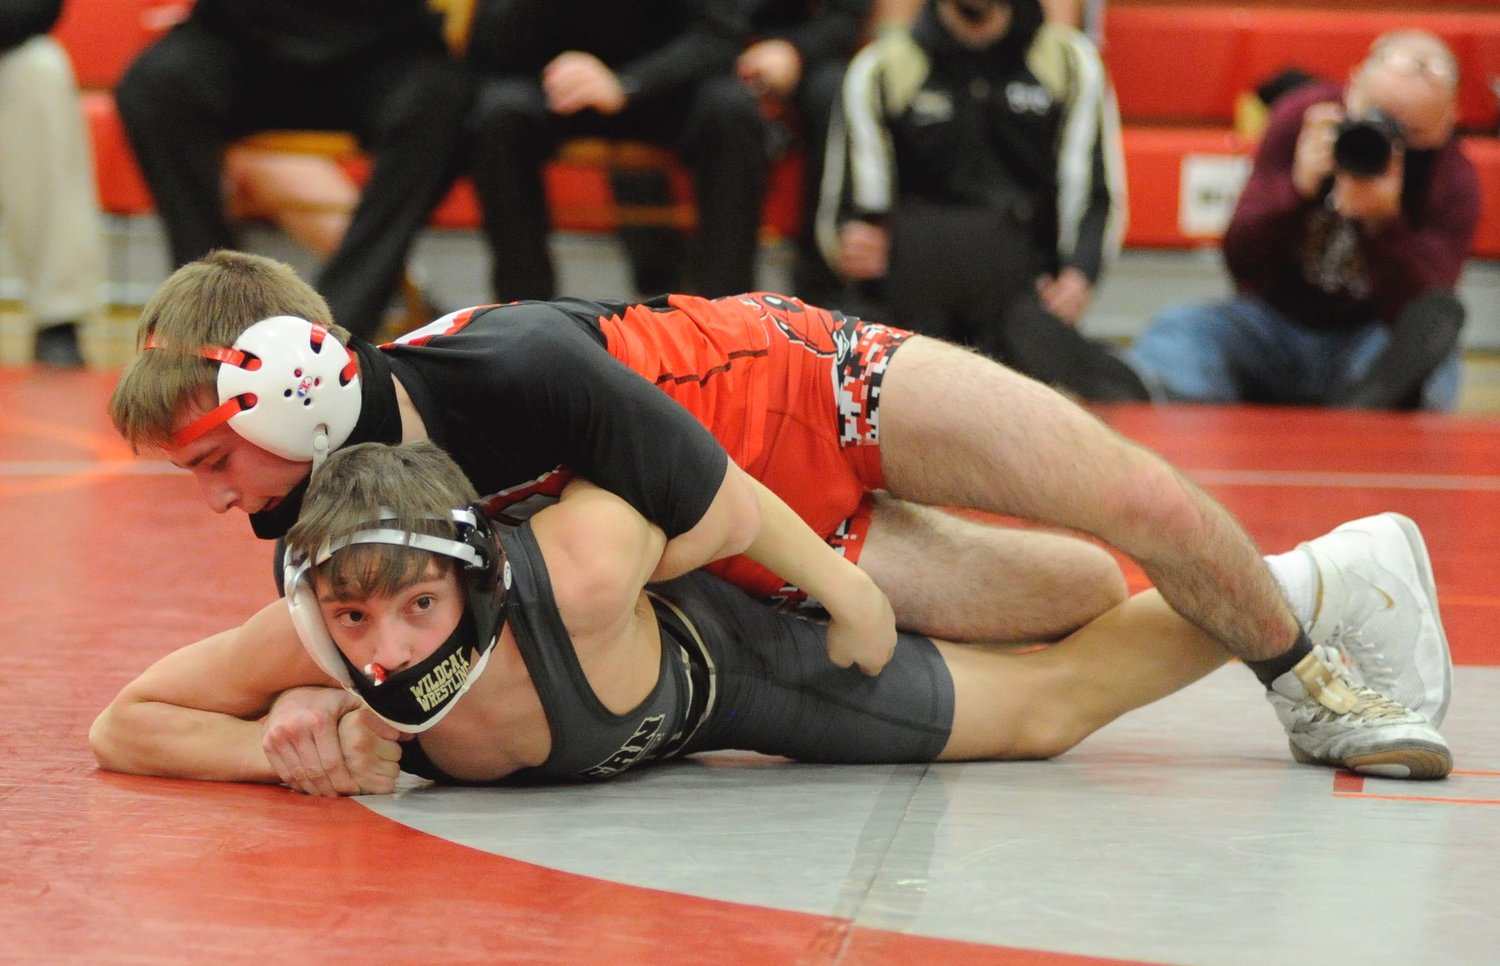 In bout #6, Honesdale's Tristyn Bodie won by fall in the 126-pound weight class. Bodie was a district finalist.